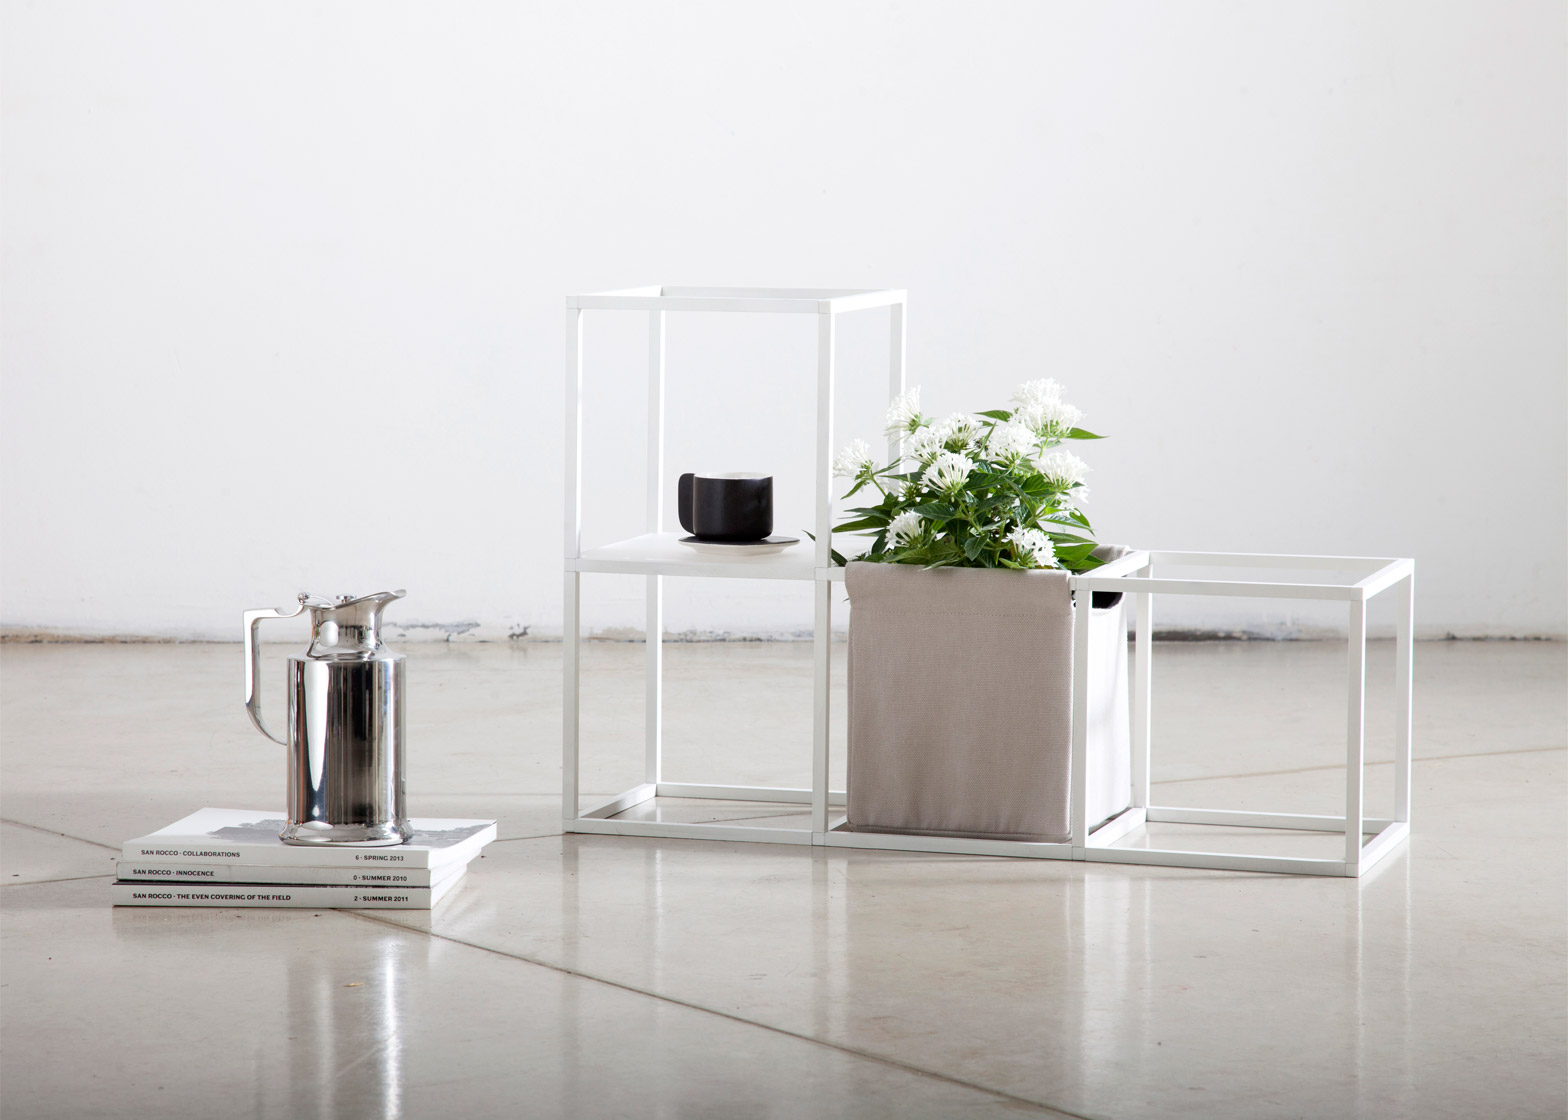 ipot modular planting system supercake. 2 Of 11; Supercake Combines Shelves And Plant Pots In Modular System Ipot Planting S